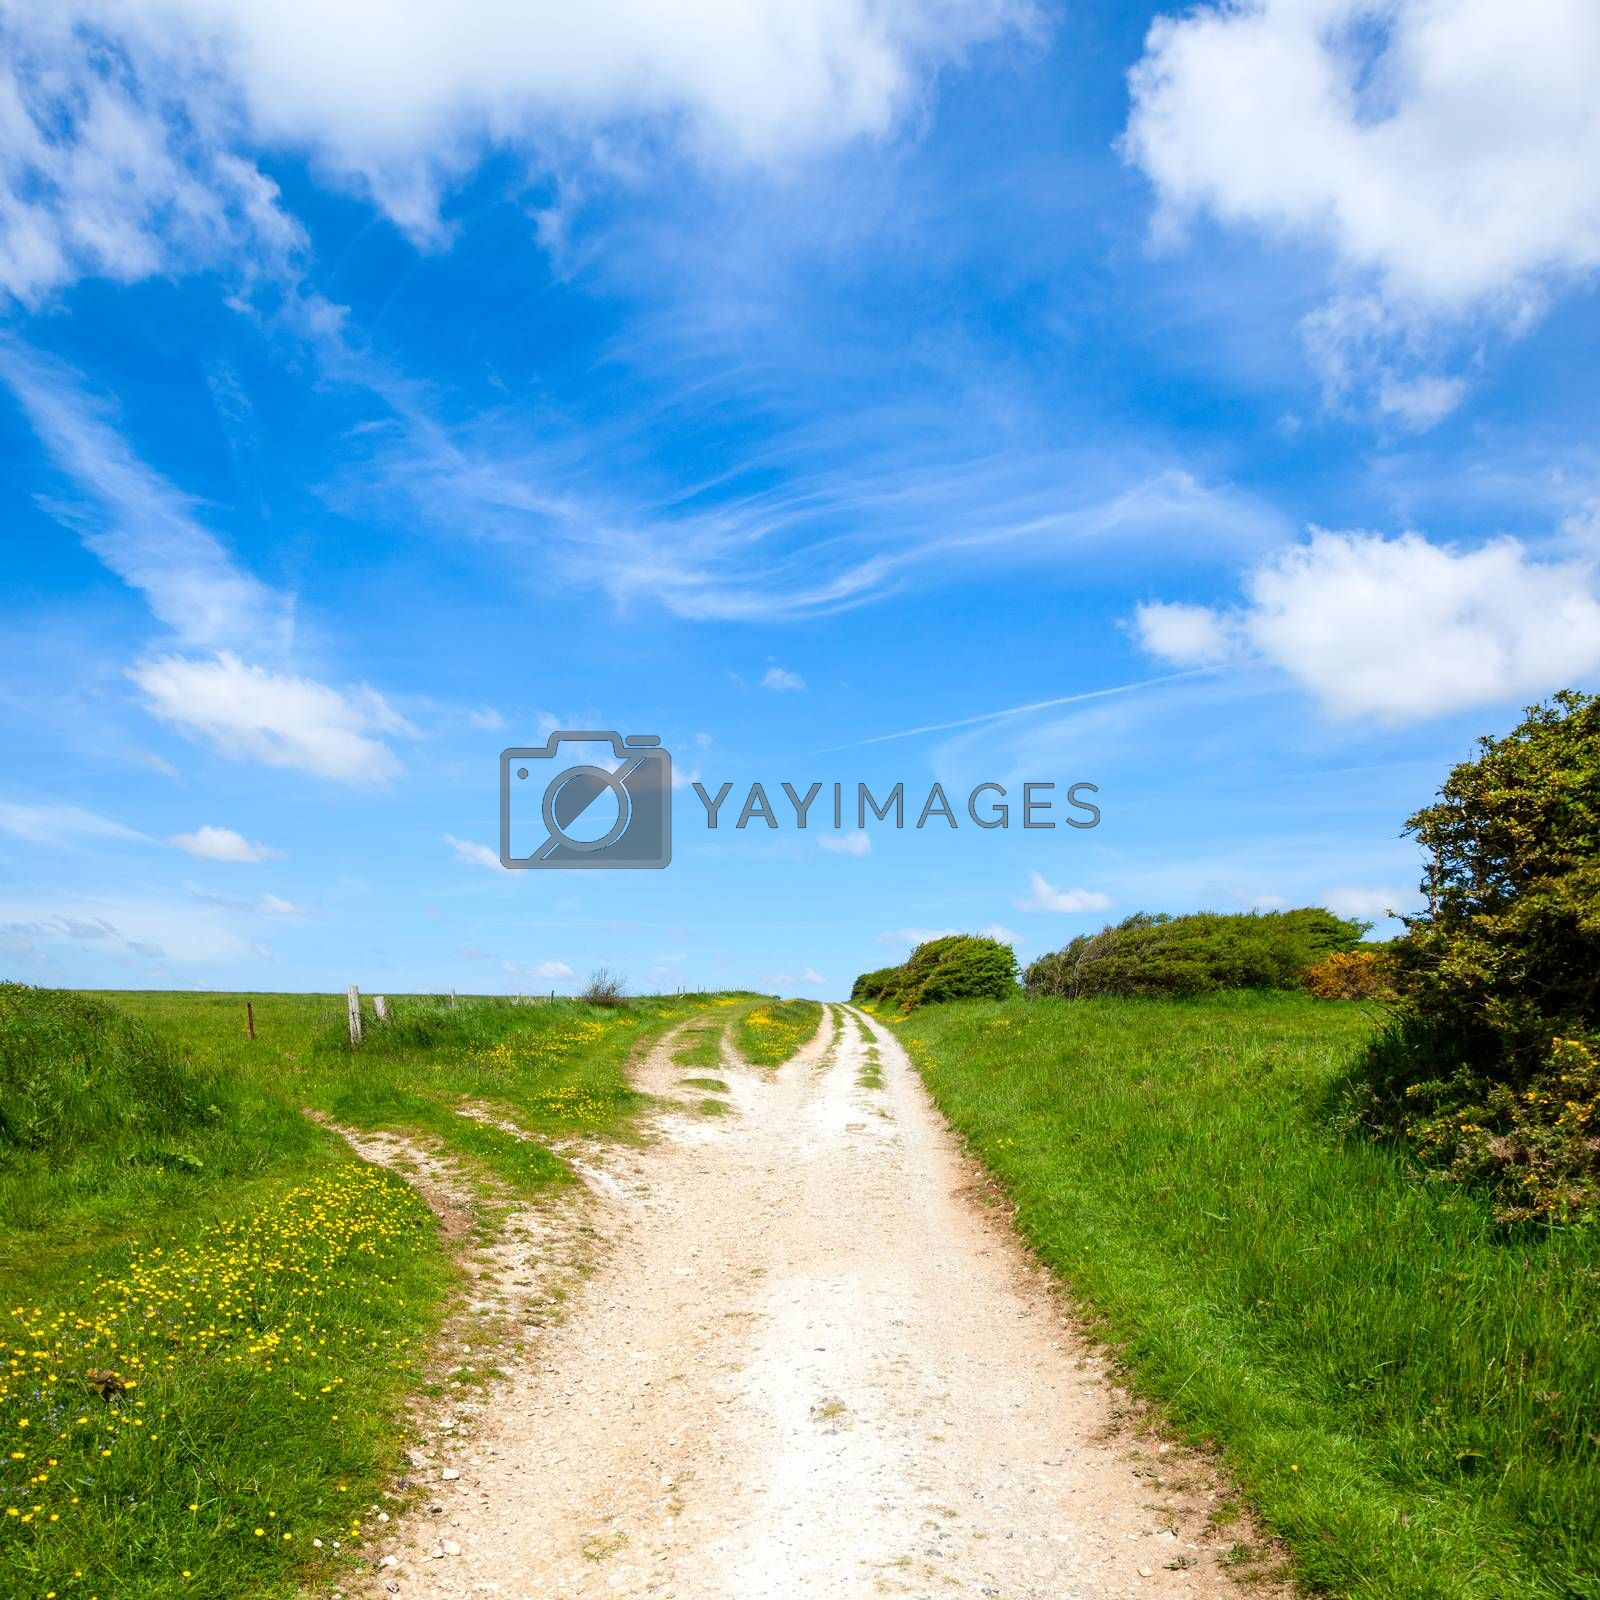 Royalty free image of North Downs Way path by naumoid